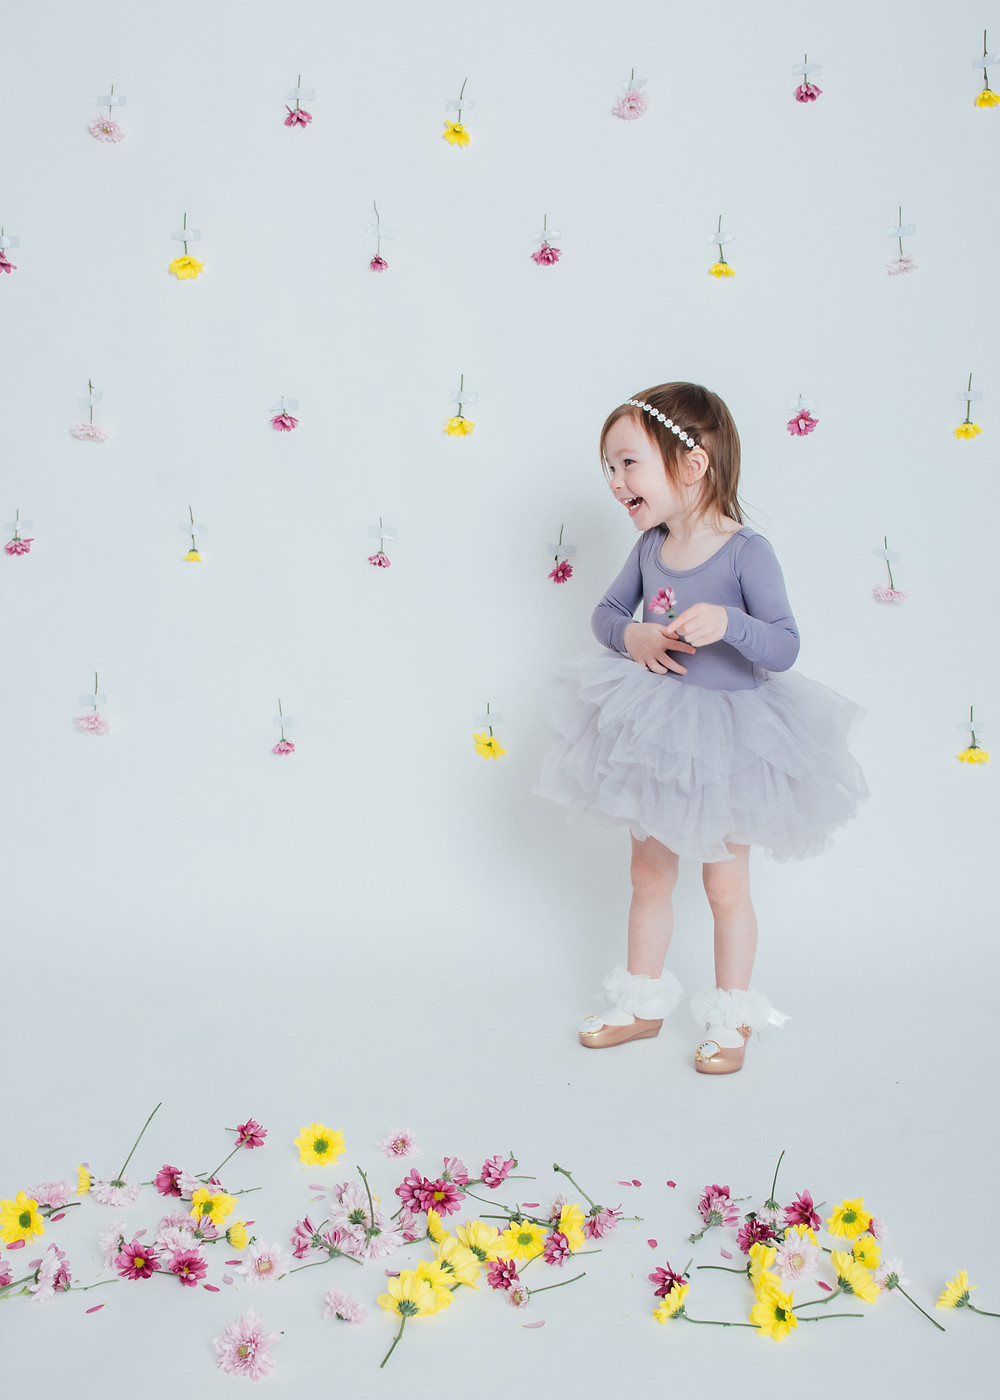 BIG shout out to Christie for inspiring me with the backdrop and having an adorable little girl for me to take photos off!! xo